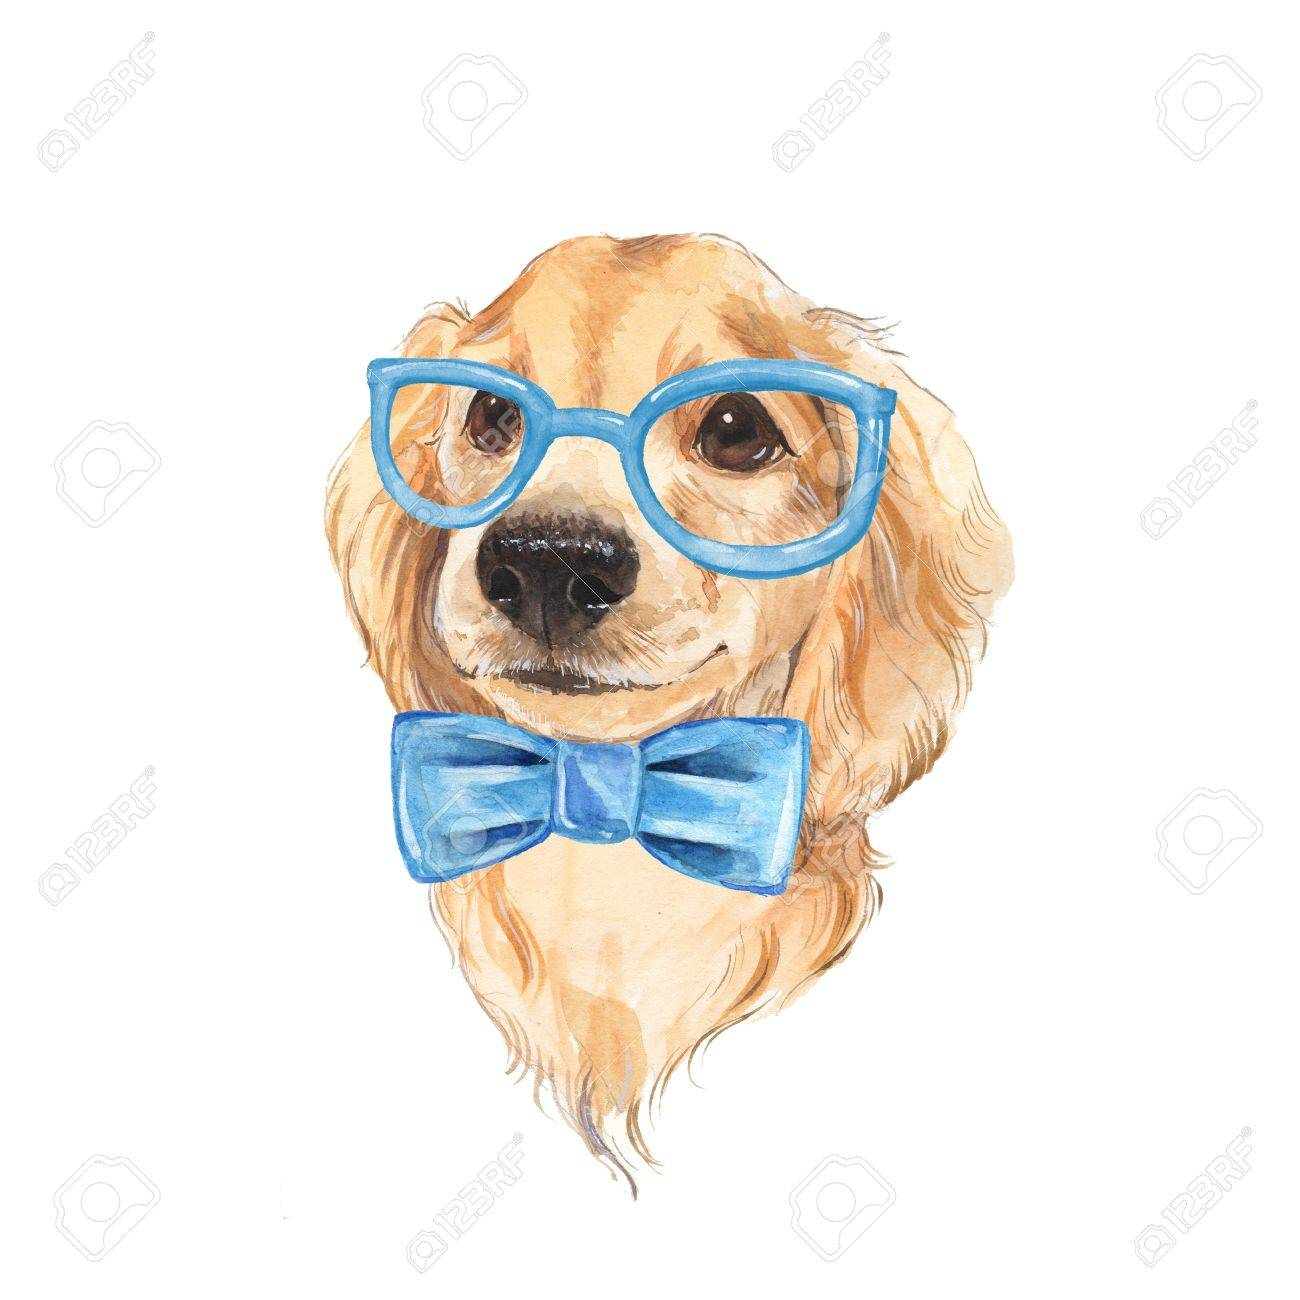 Beautiful Bow Tie Bow Adorable Dog - 68127960-cute-dog-sketch-blue-bow-tie-hand-painted-watercolor-illustration-  Graphic_469285  .jpg